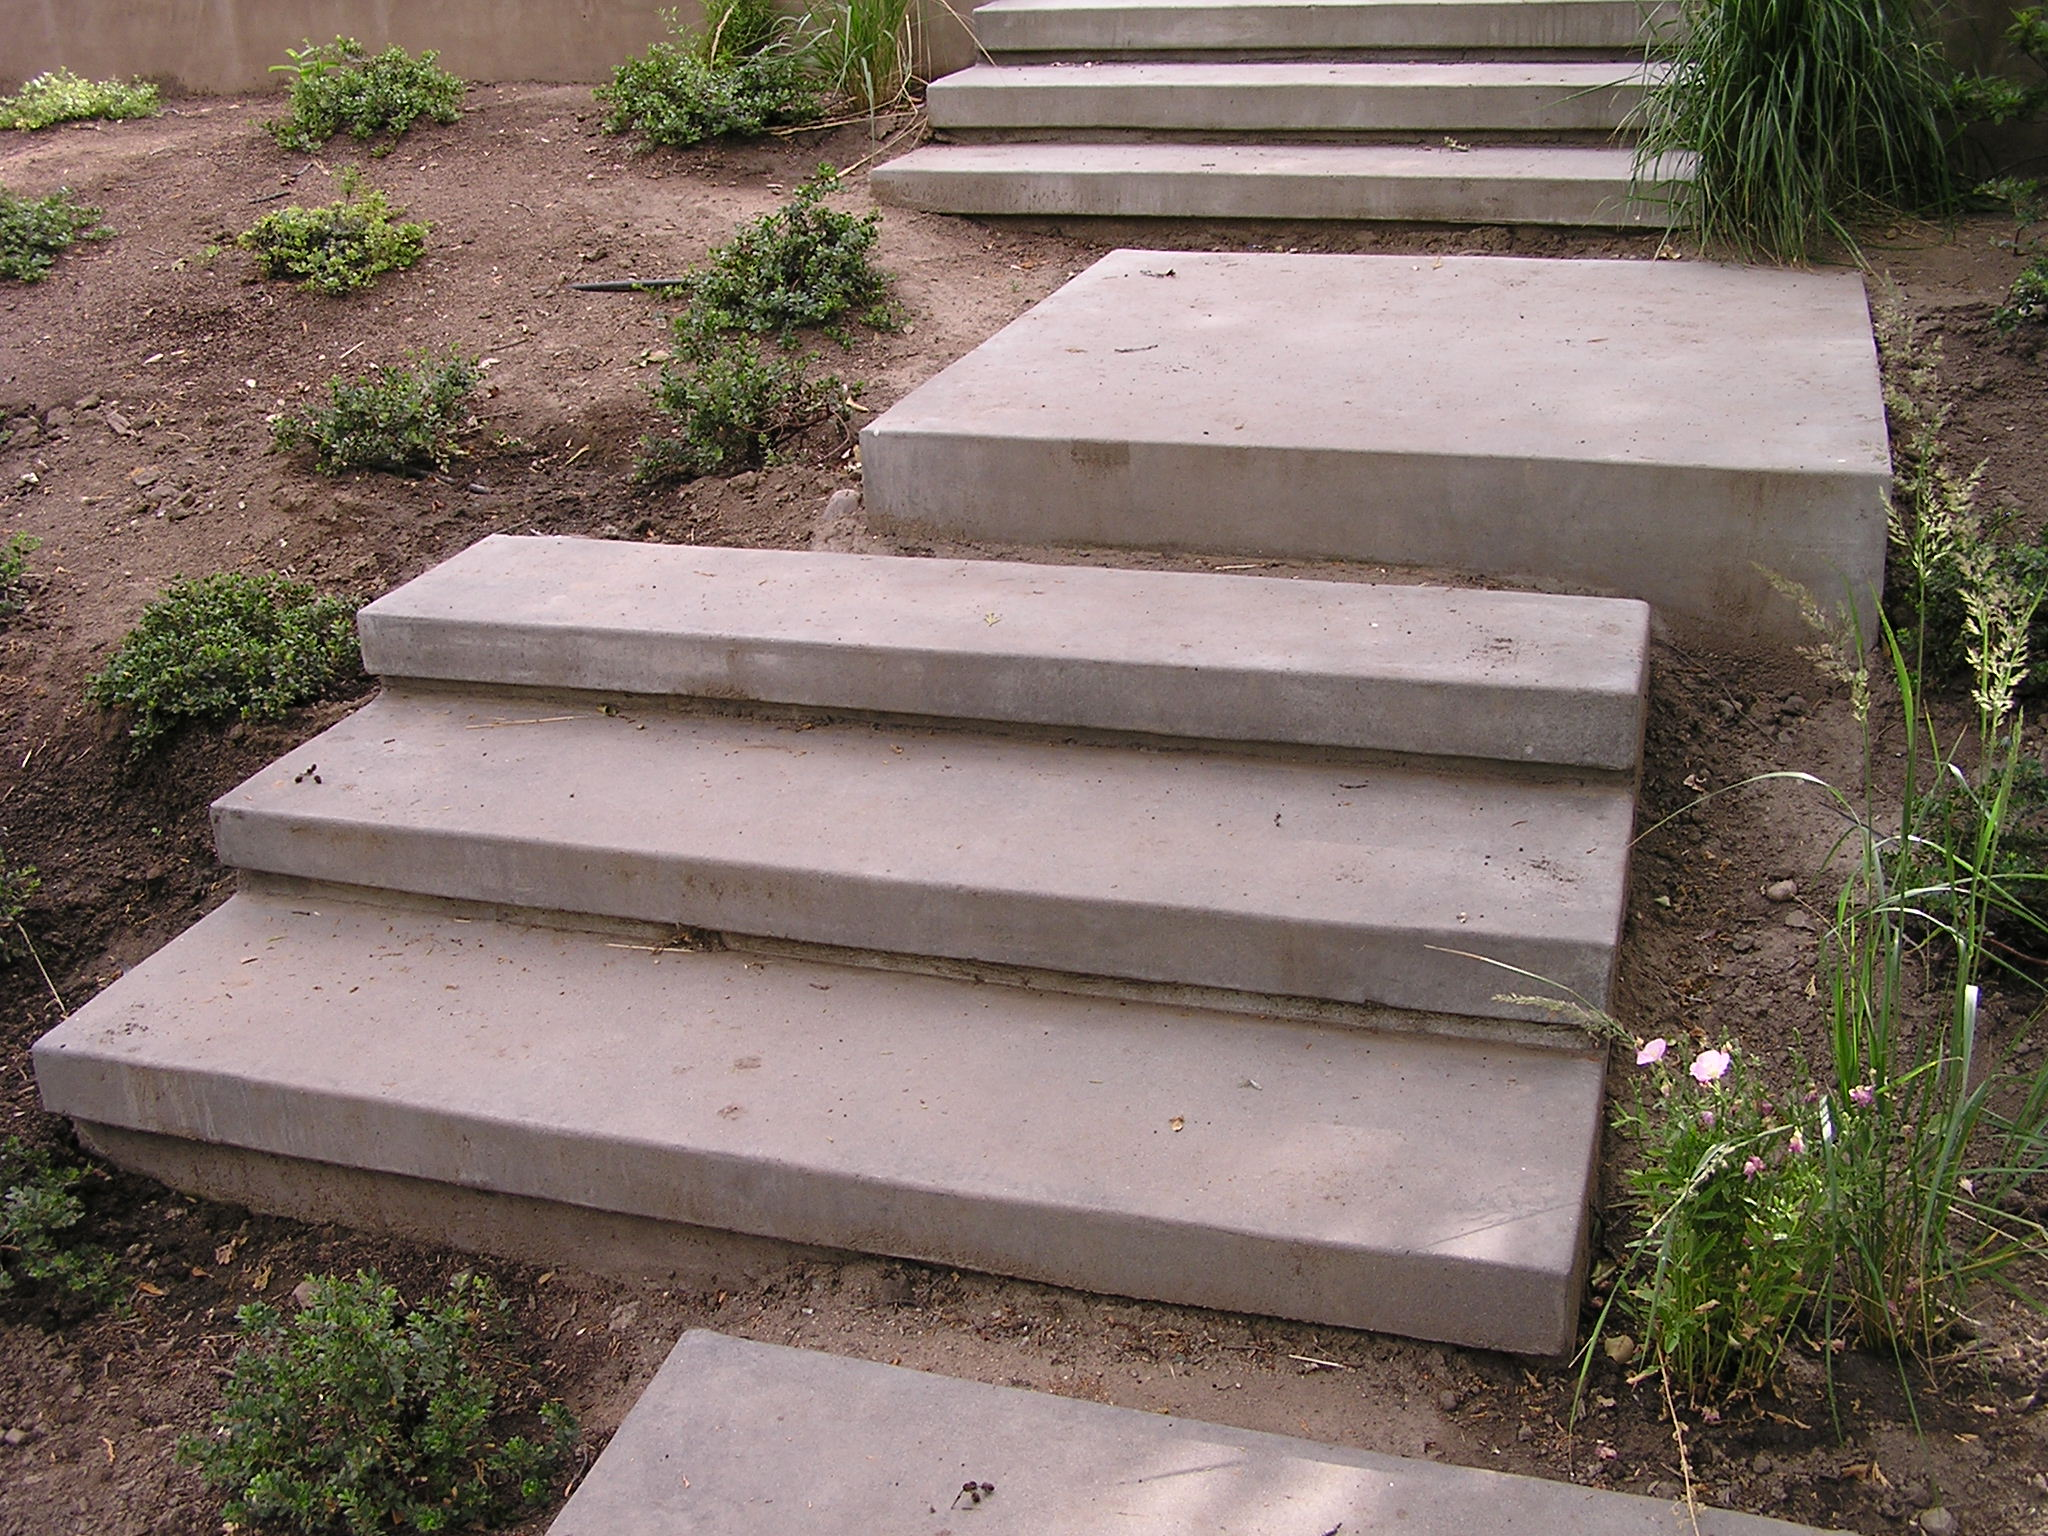 OLYMPUS DIGITAL CAMERA & Sand Finishes / Acid Washed | Surface Solutions Concrete SF Bay Area ...